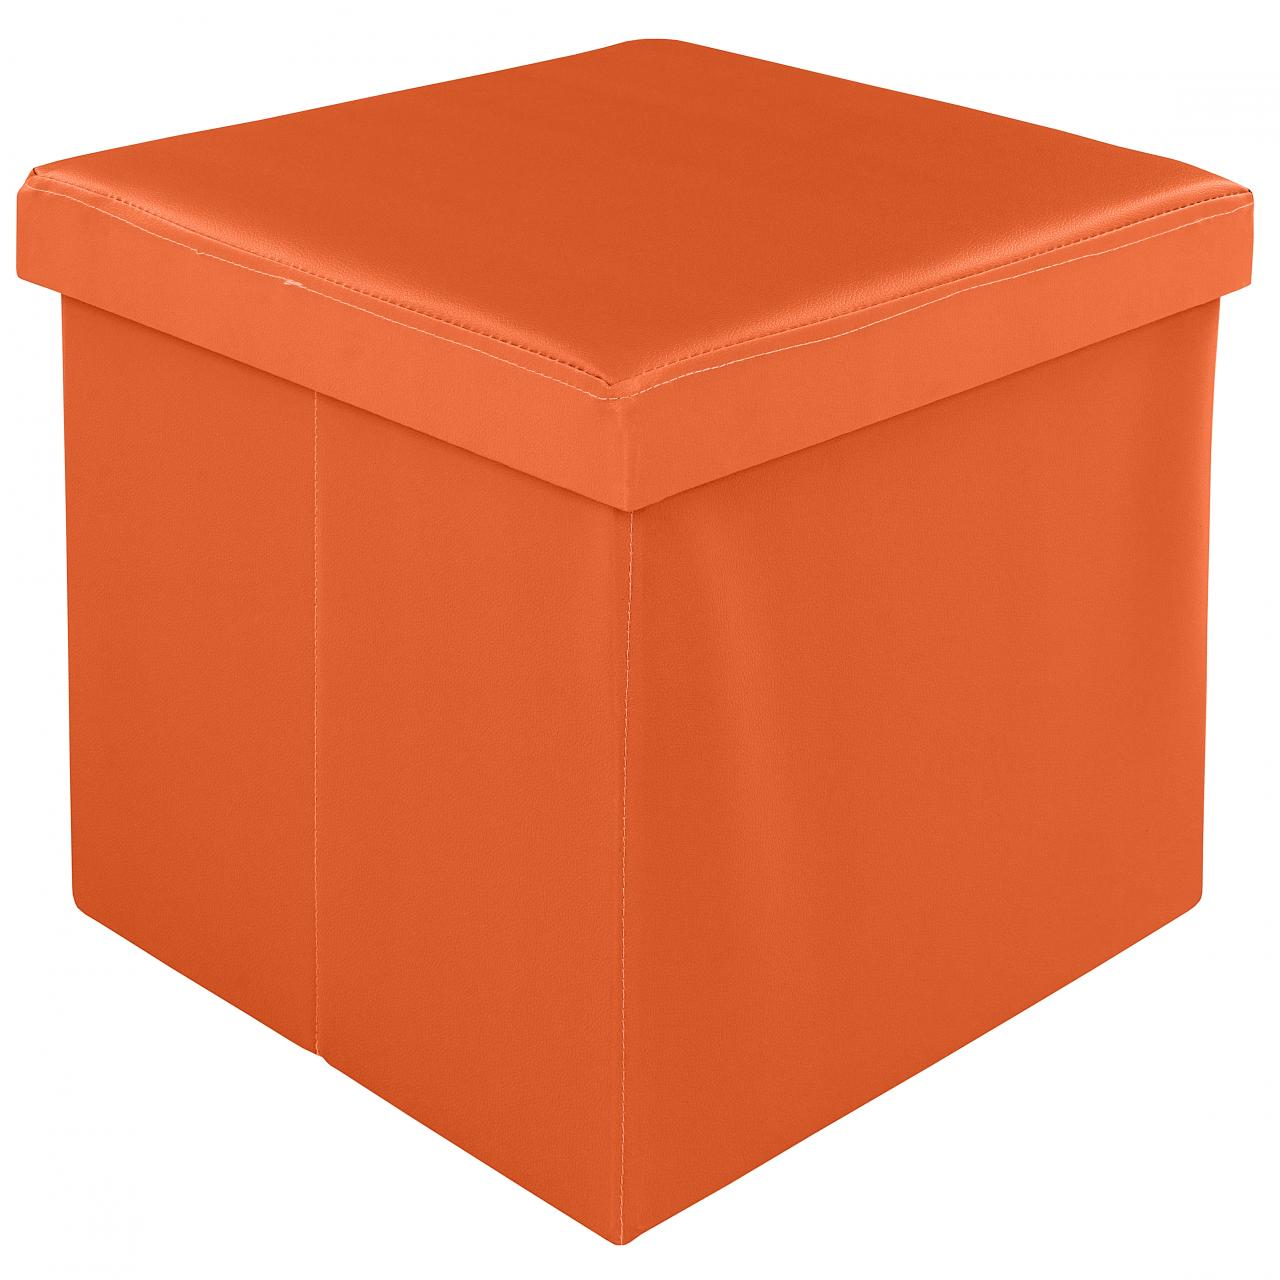 pouf tabouret repose pieds cube pliable box de rangement couleurs diverses ebay. Black Bedroom Furniture Sets. Home Design Ideas